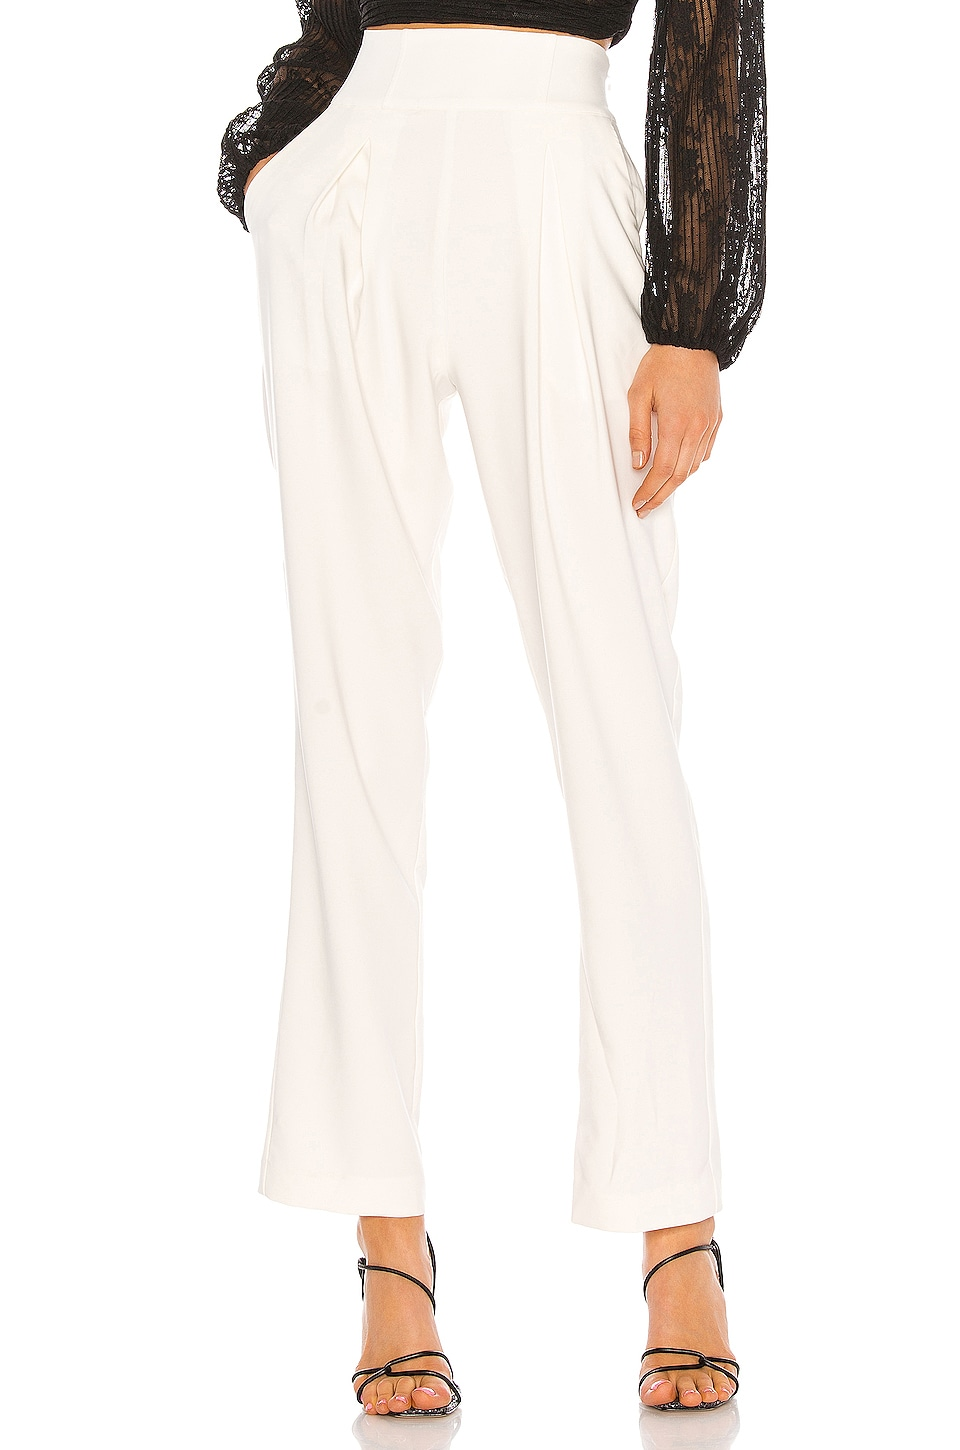 NBD Augustine Pant in White